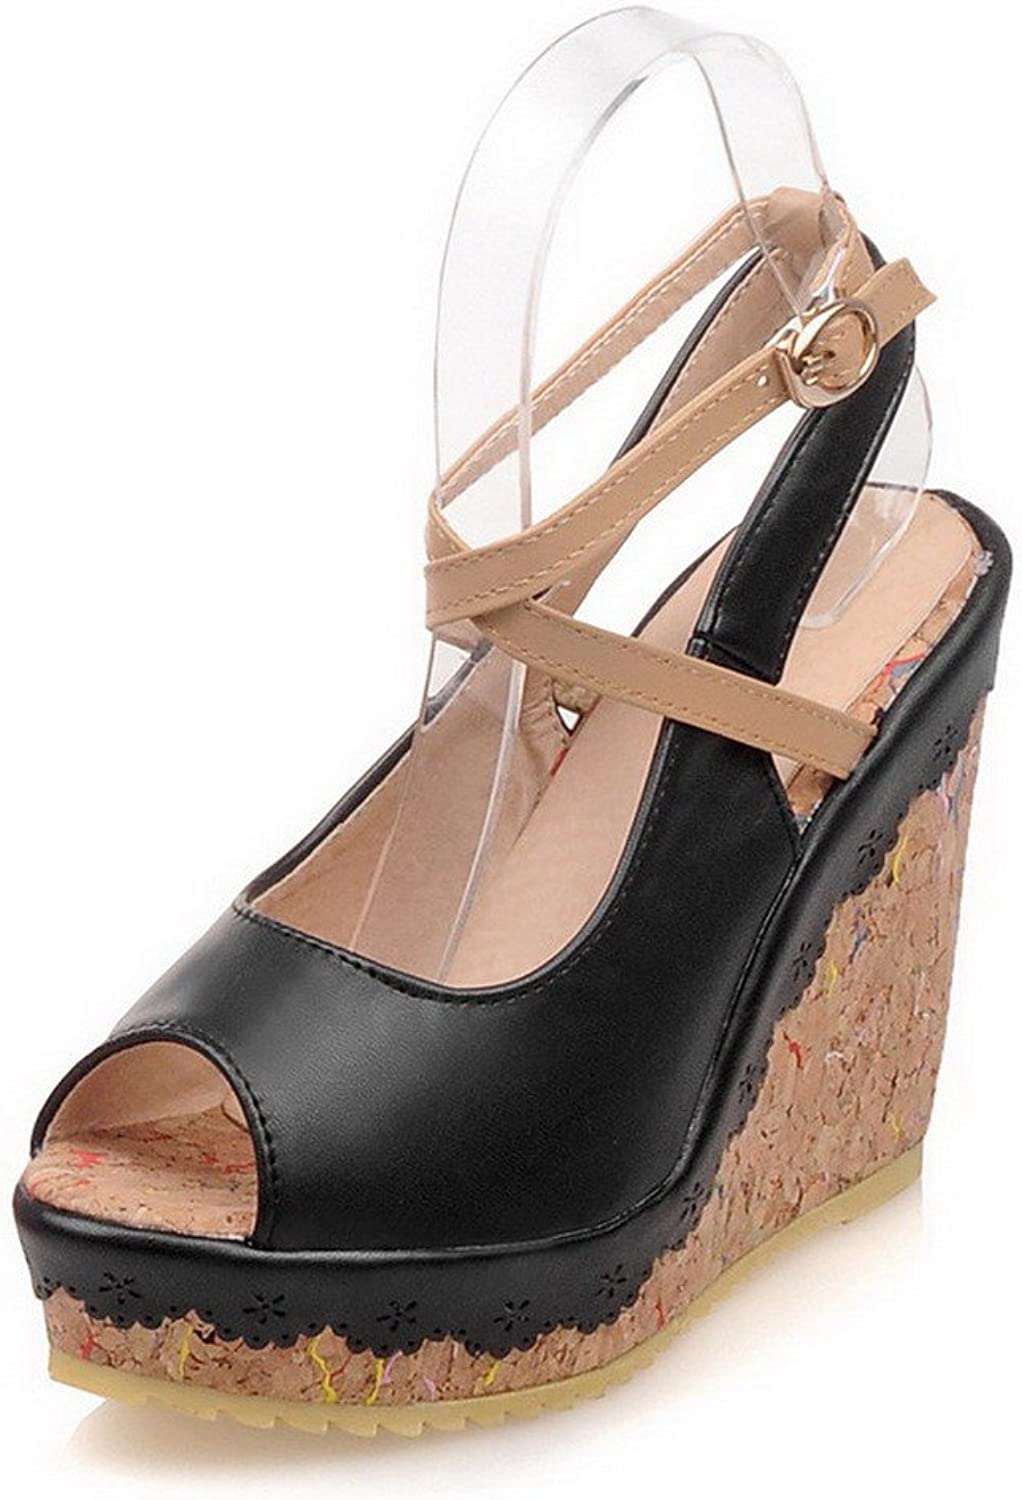 WeenFashion Women's High Heels Soft Material Assorted color Buckle Peep Toe Sandals